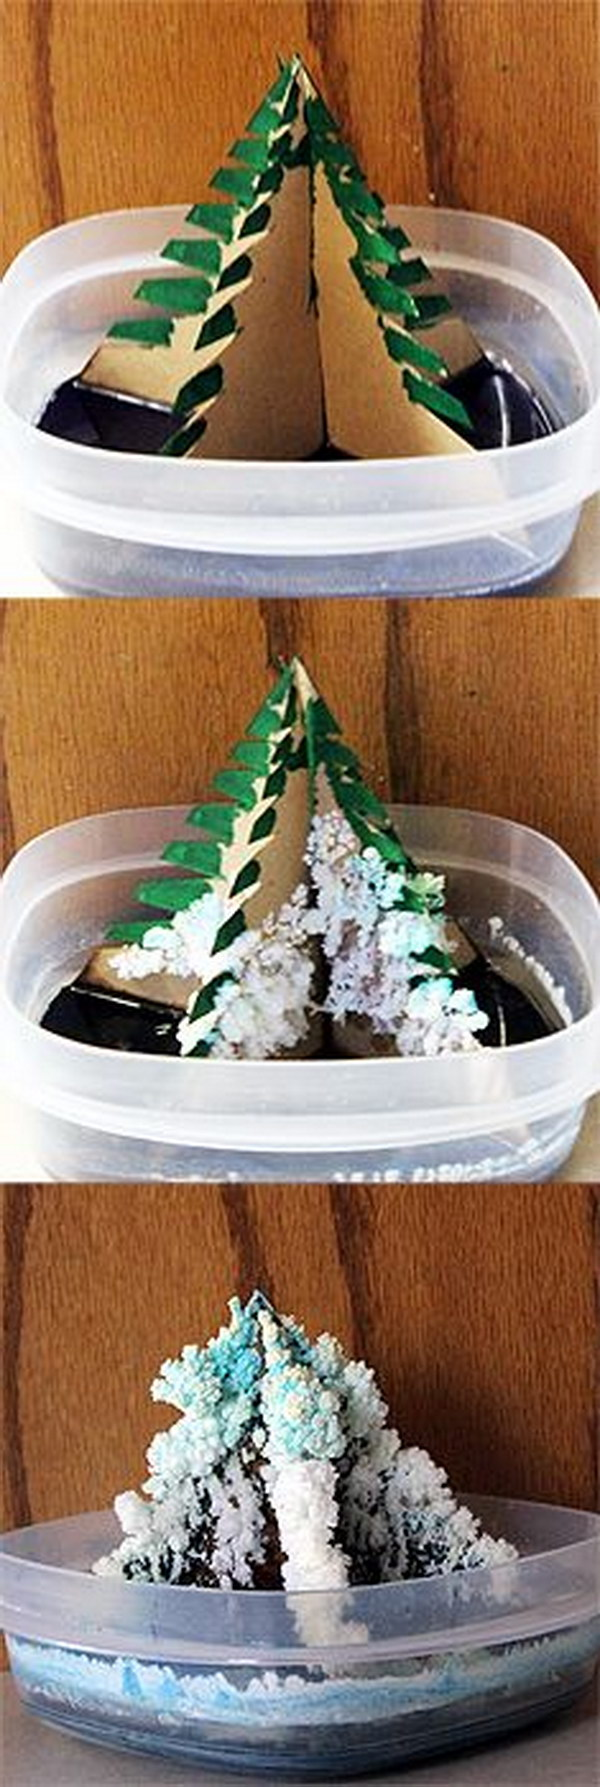 Easy cool science experiments for kids hative grow your own christmas tree with this fun christmas tree science experiment forumfinder Choice Image